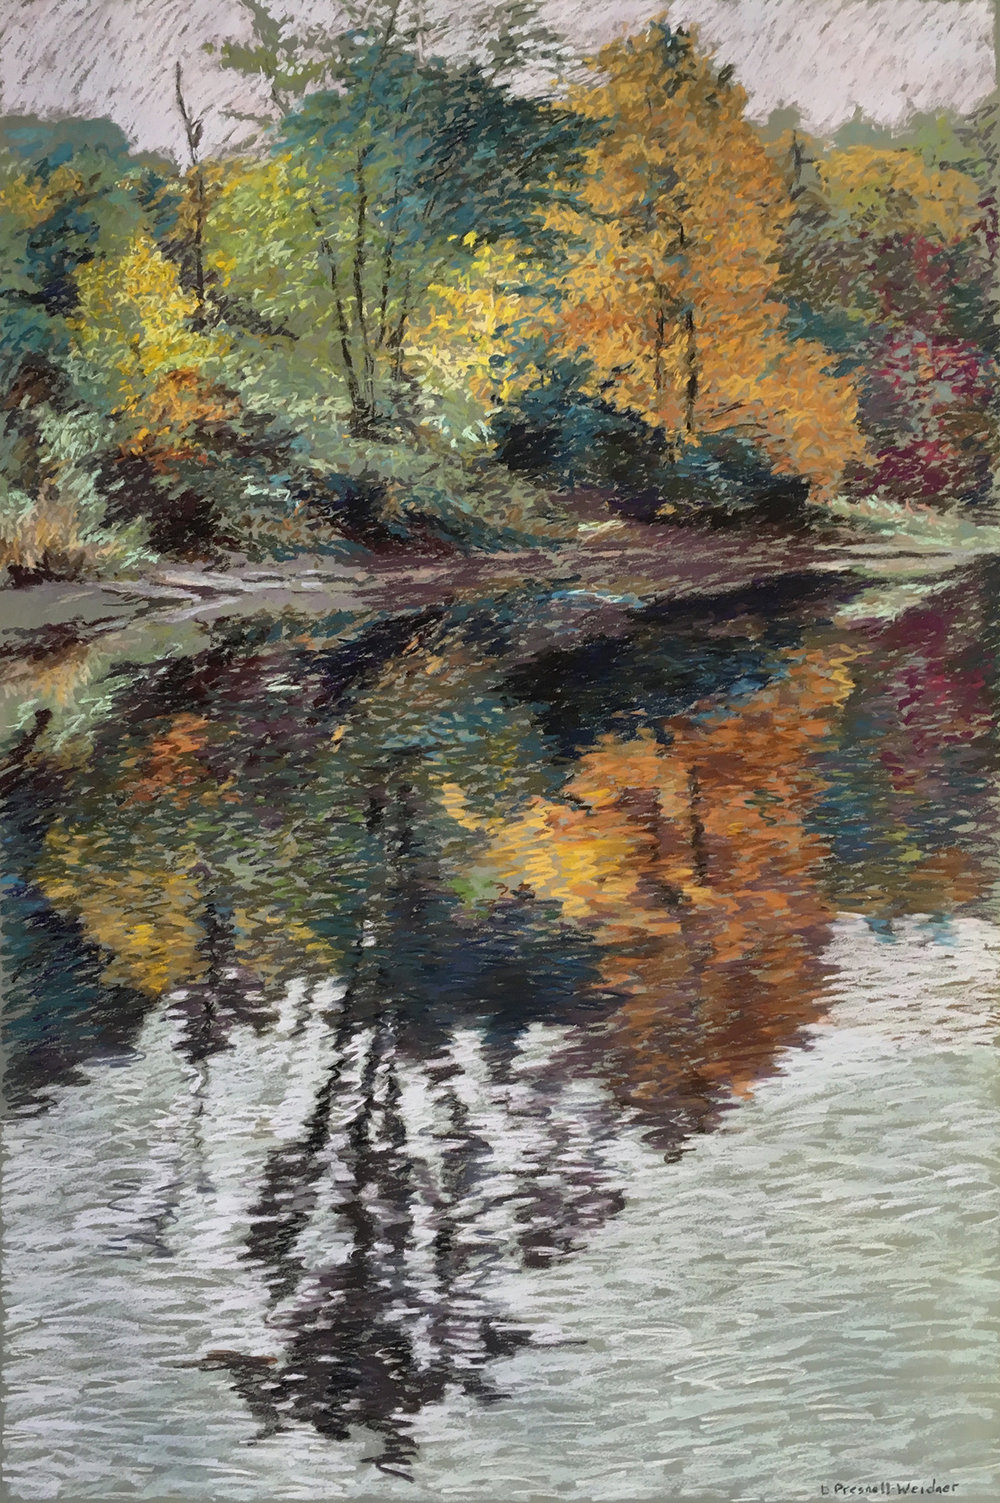 ls bridge west - Denise Presnell23.5 x 35.5    Pastel on paperSee more from this artist